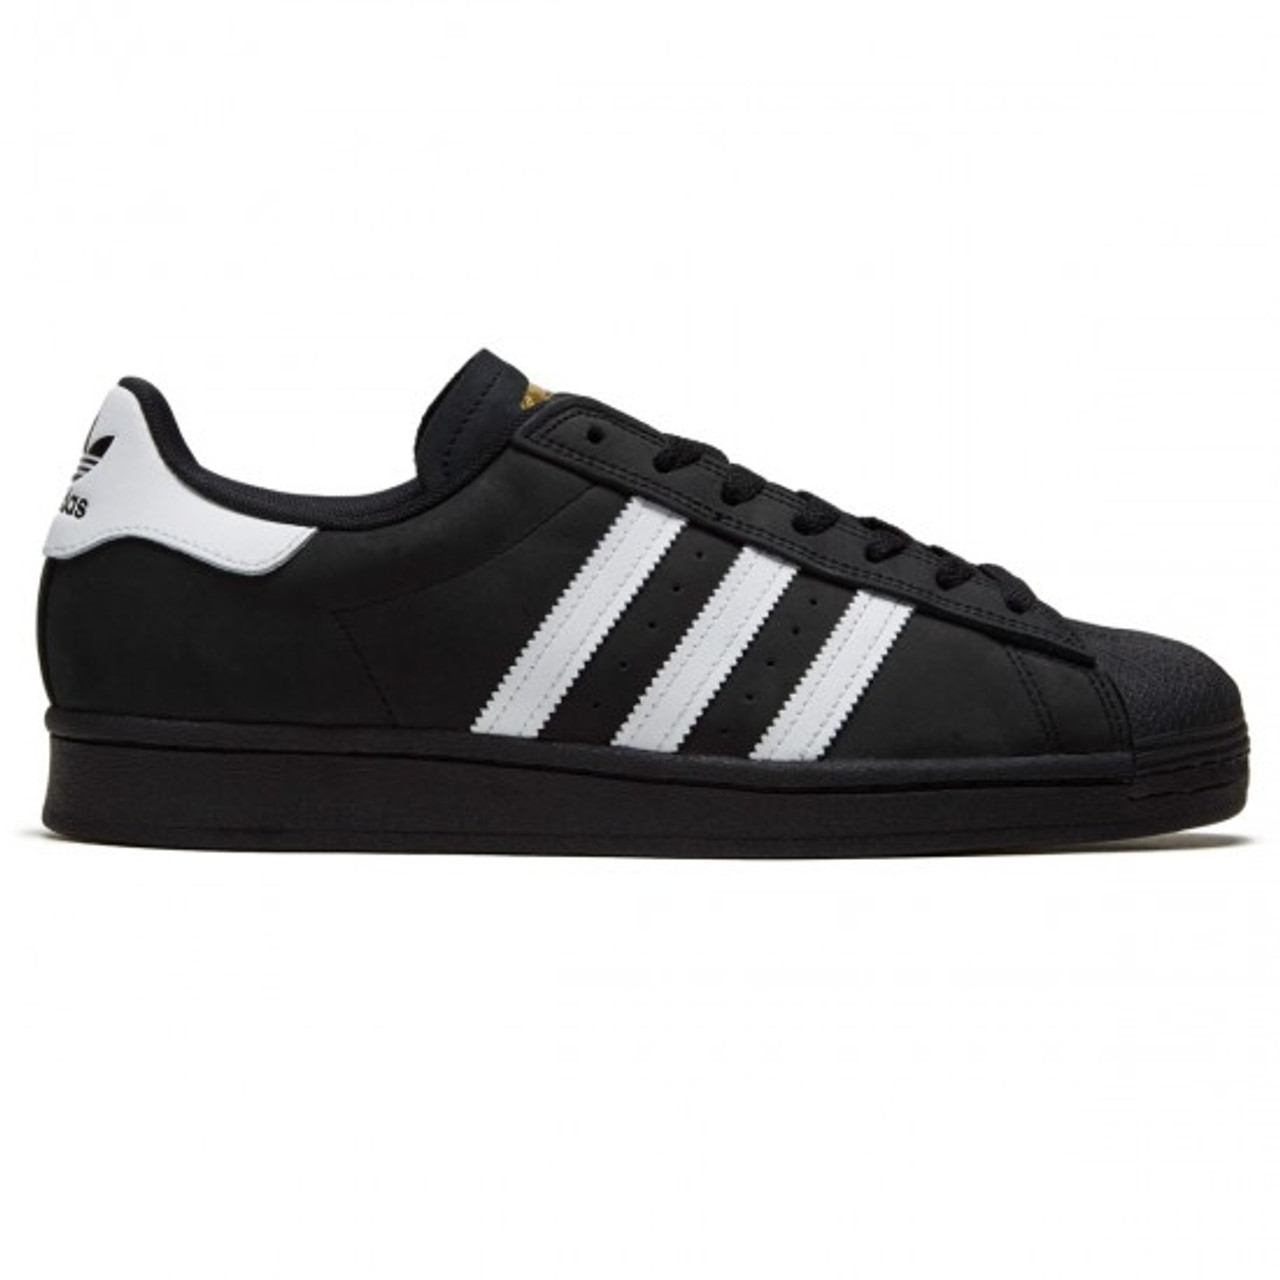 Sorprendido prioridad adherirse  Adidas Superstar Shell Toe Shoes Black White | Boardparadise.com